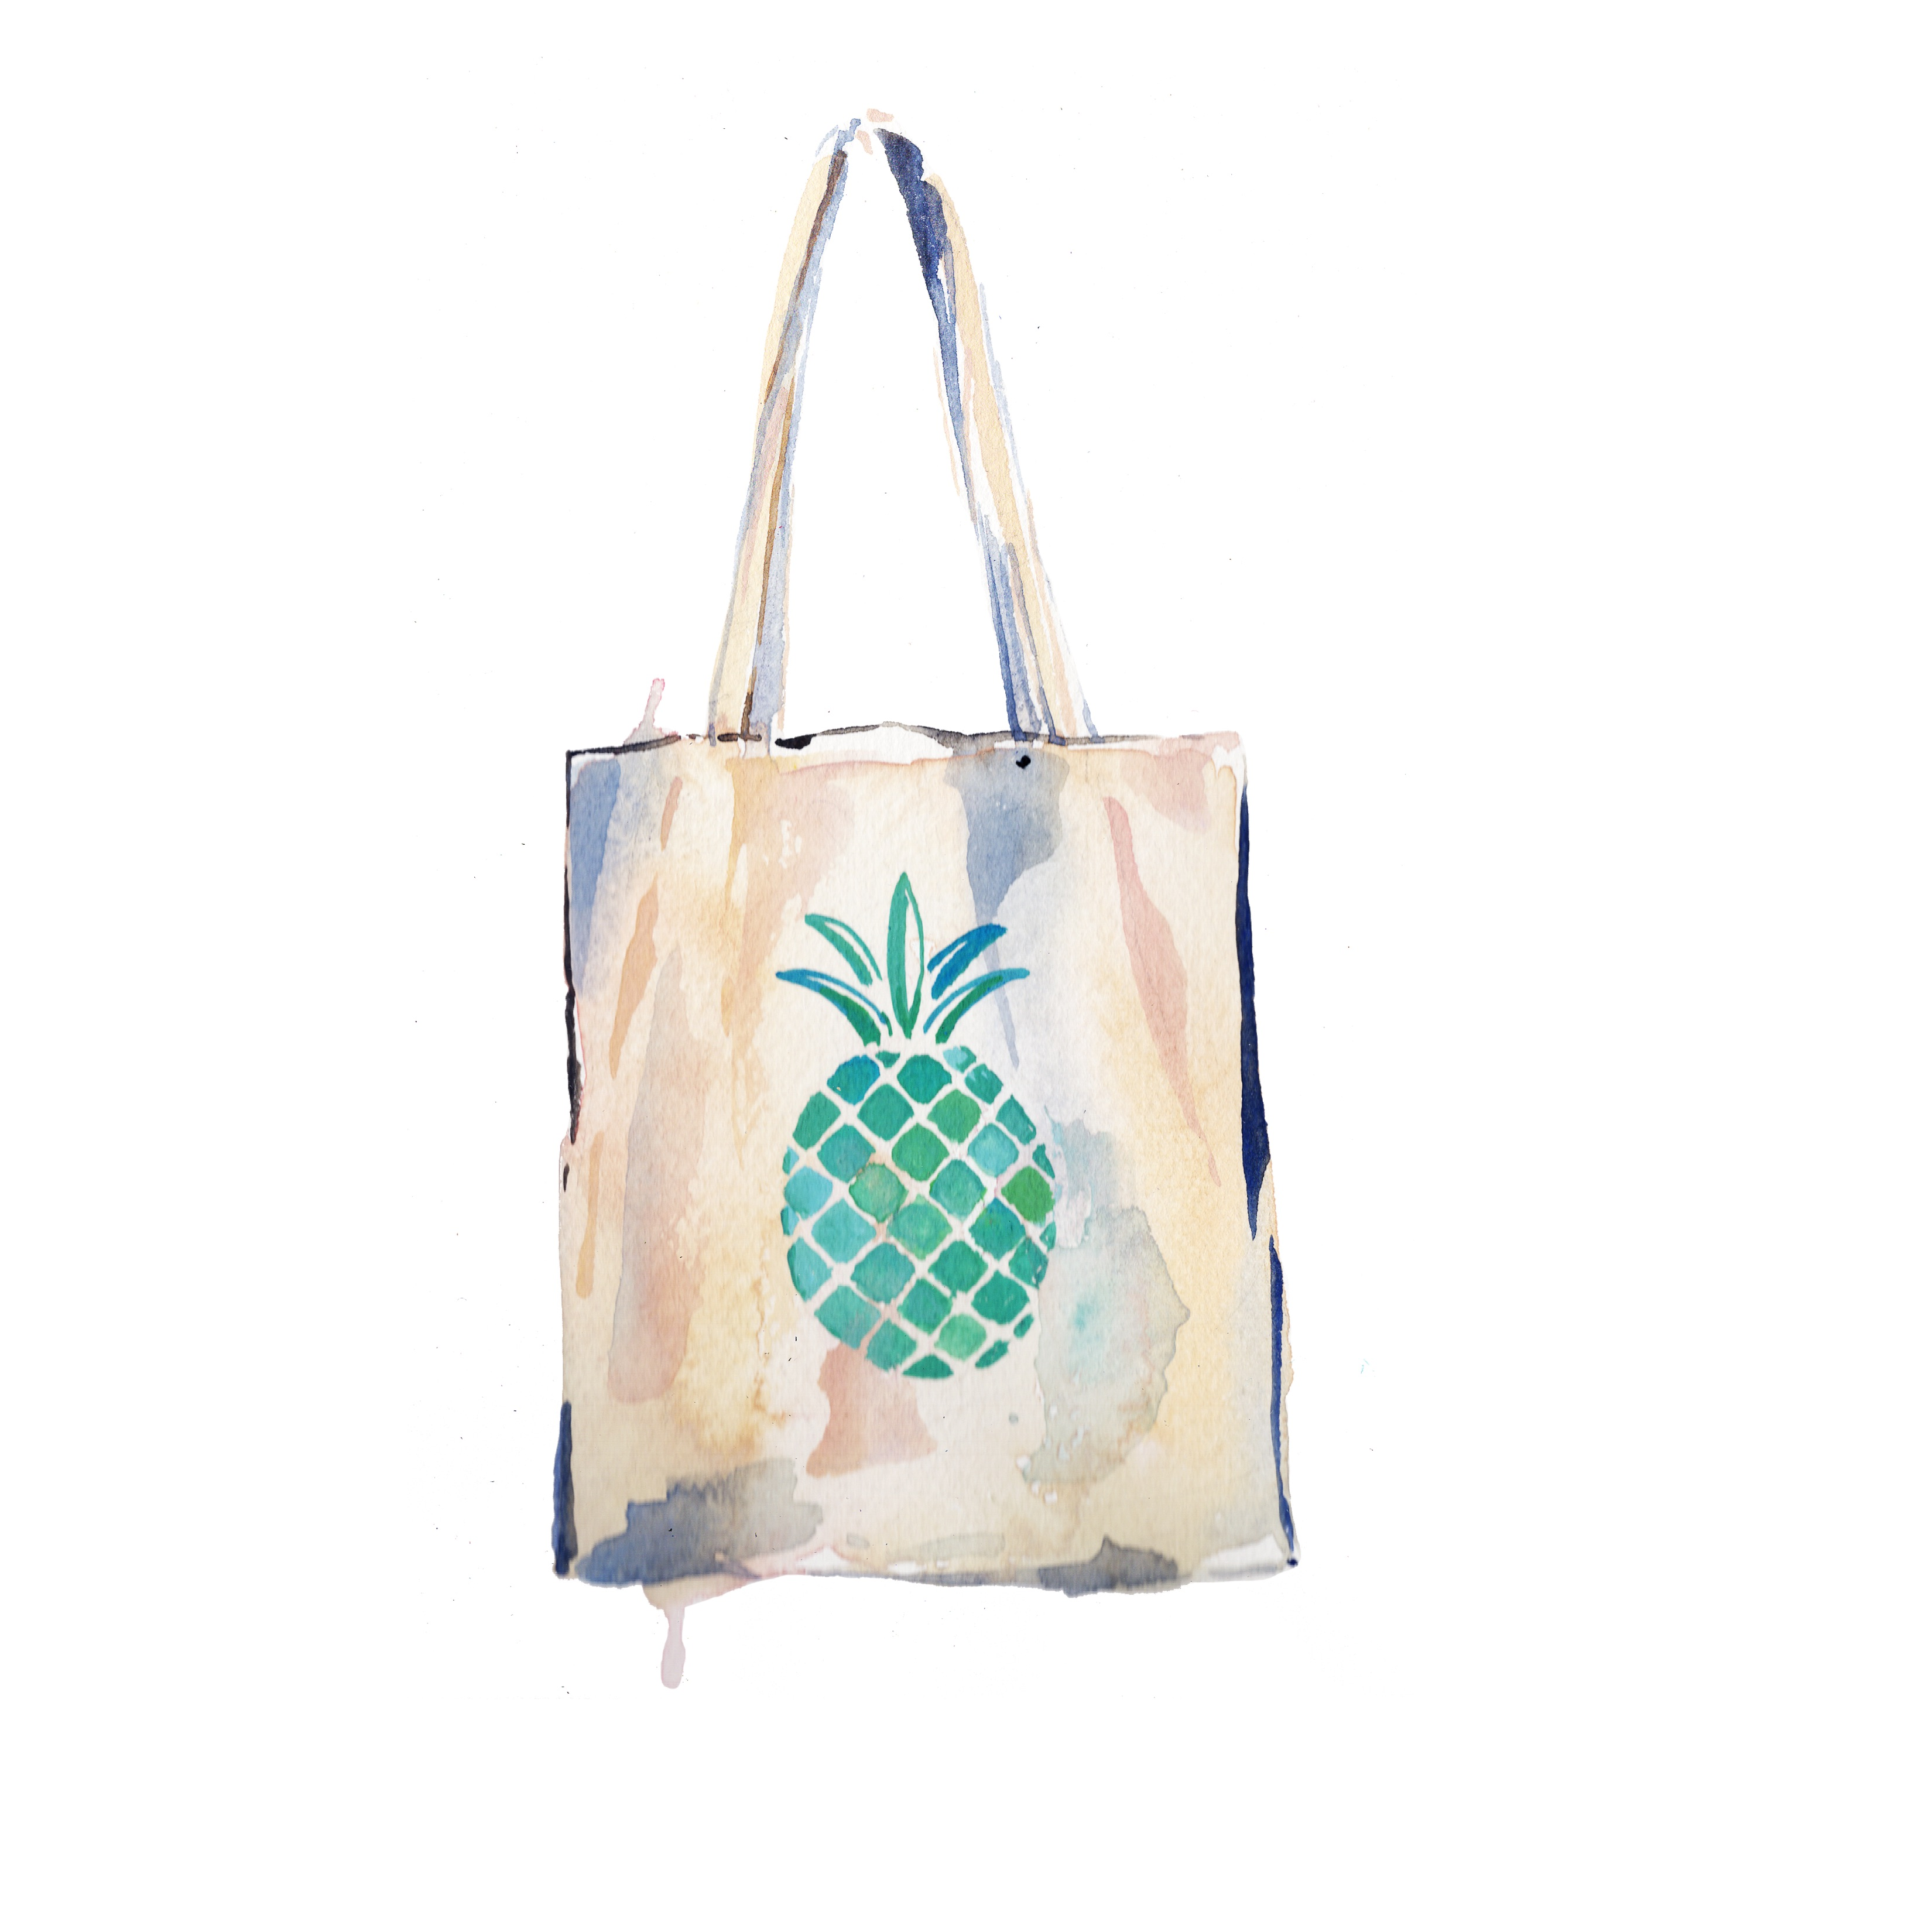 Free Canvas Tote Bag + Free Shipping With Every Purchase @ Soludos